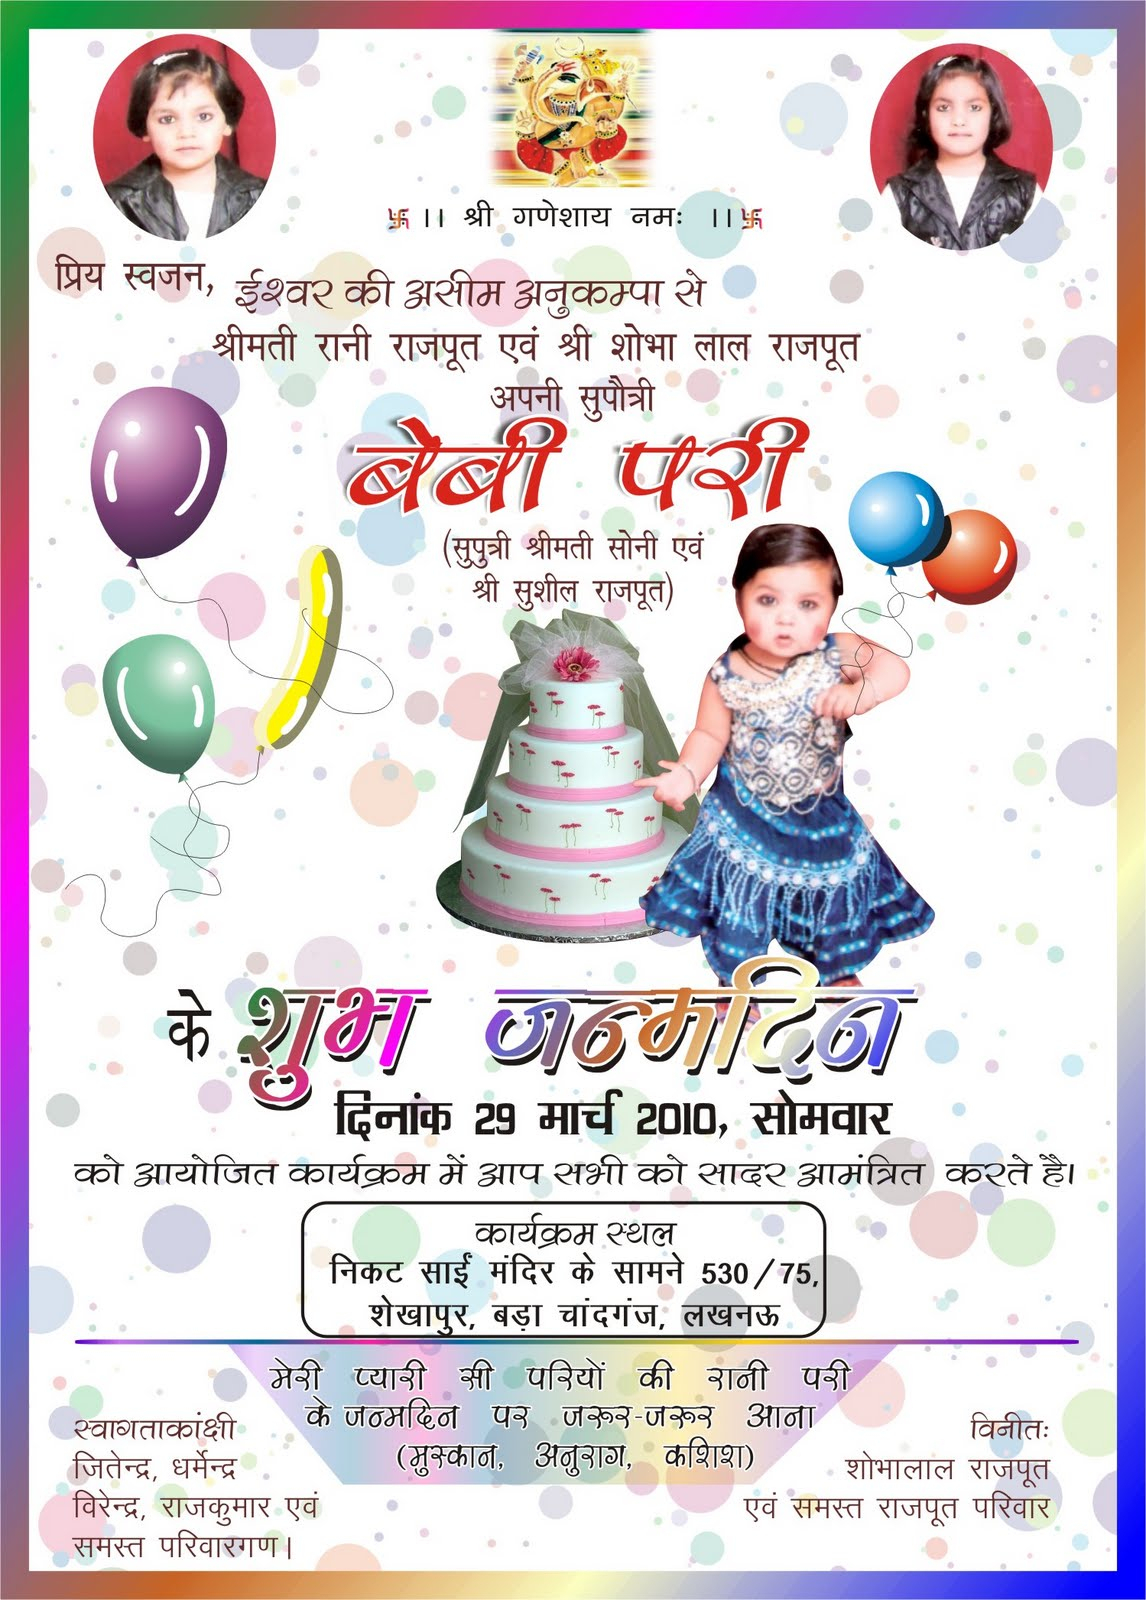 birthday invitation in marathi ; baby-shower-invitation-card-in-marathi-fresh-invitation-matter-of-baby-shower-in-marathi-marathi-of-baby-shower-invitation-card-in-marathi-1